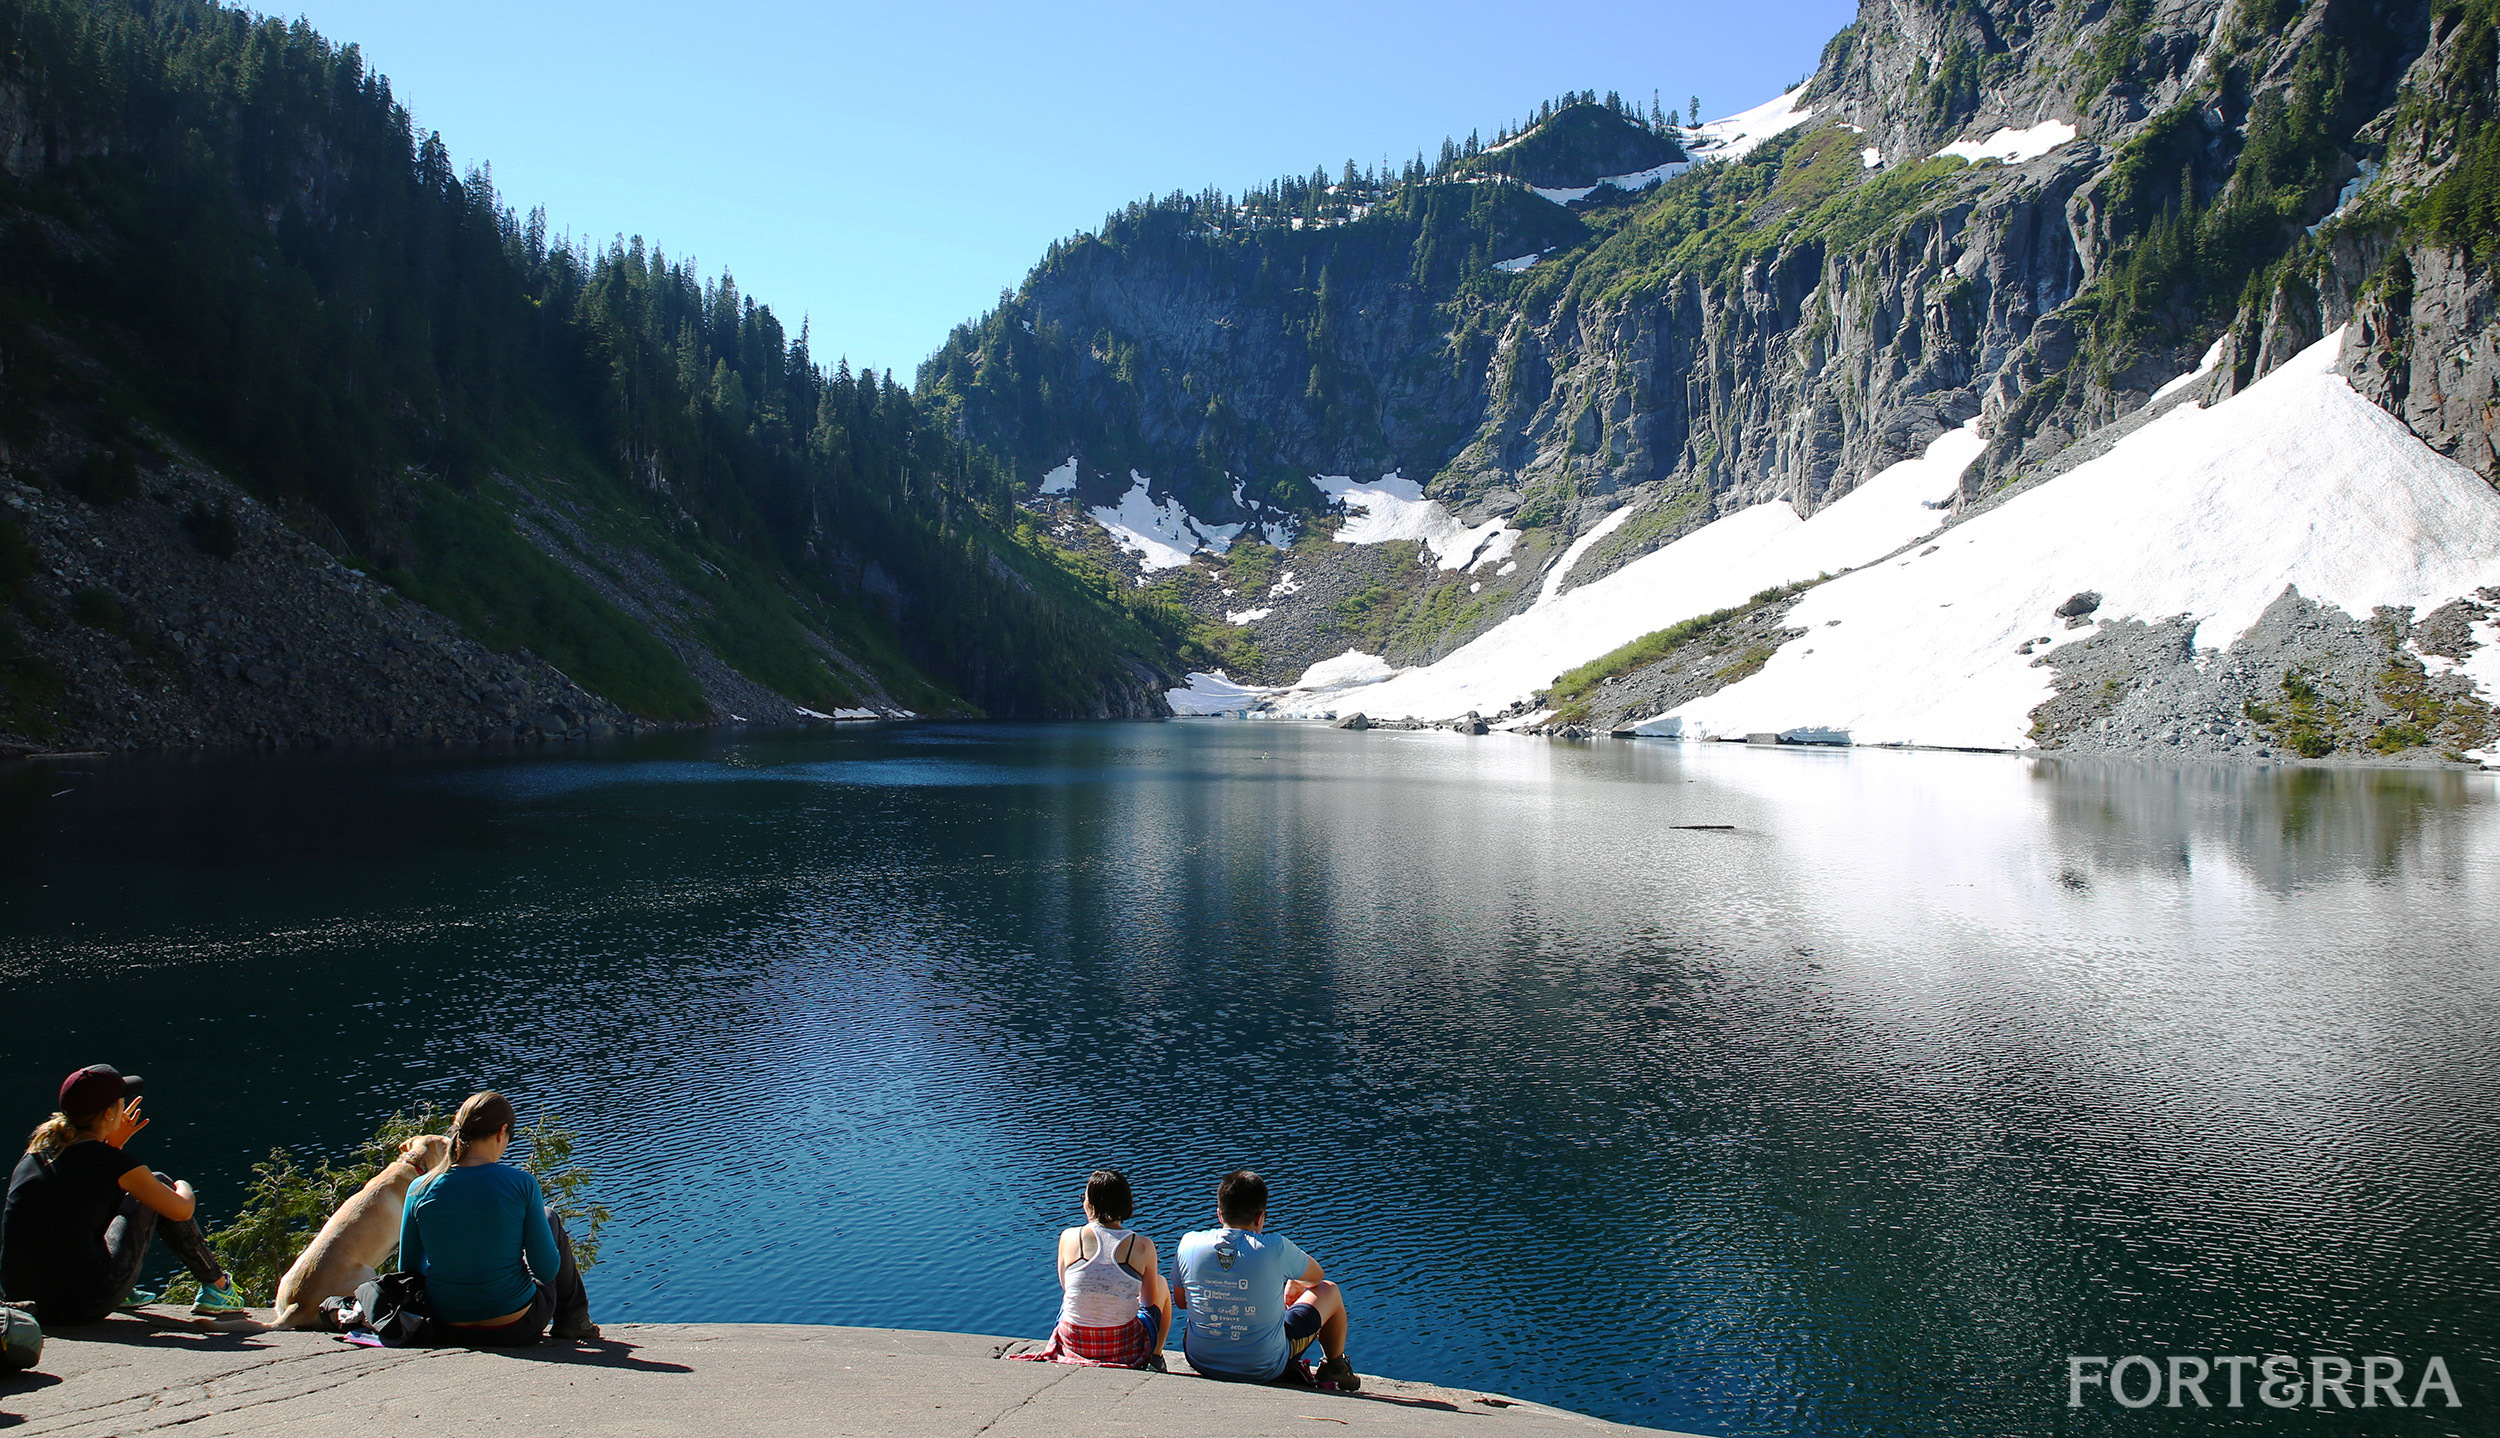 Lake Serene Trail officially preserved